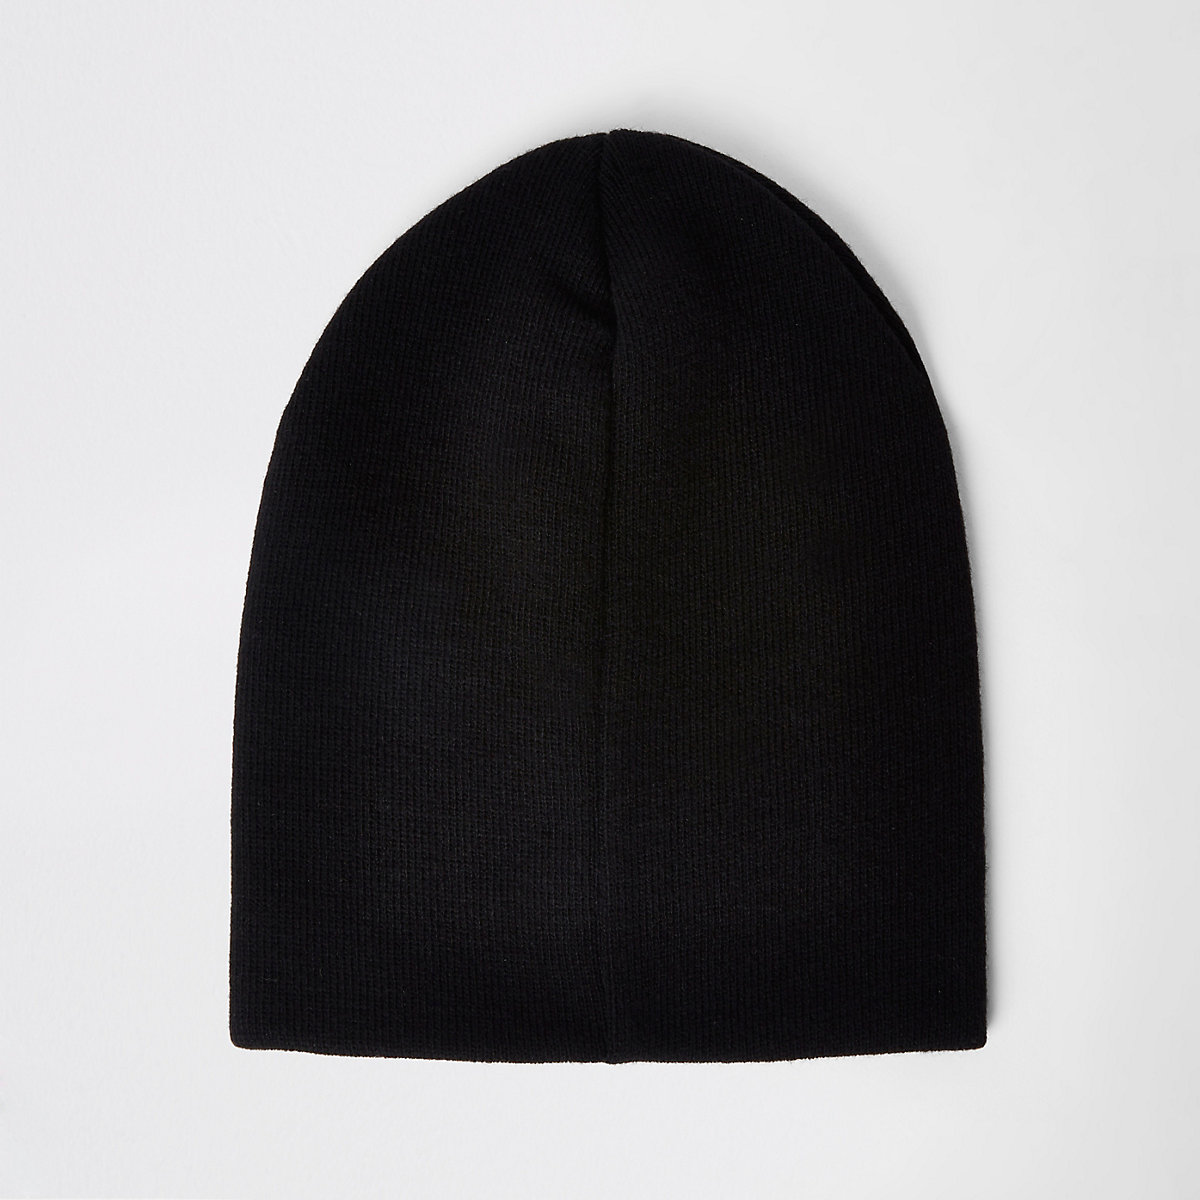 Black slouch beanie hat - Hats   Caps - Accessories - men cf60b1015ac